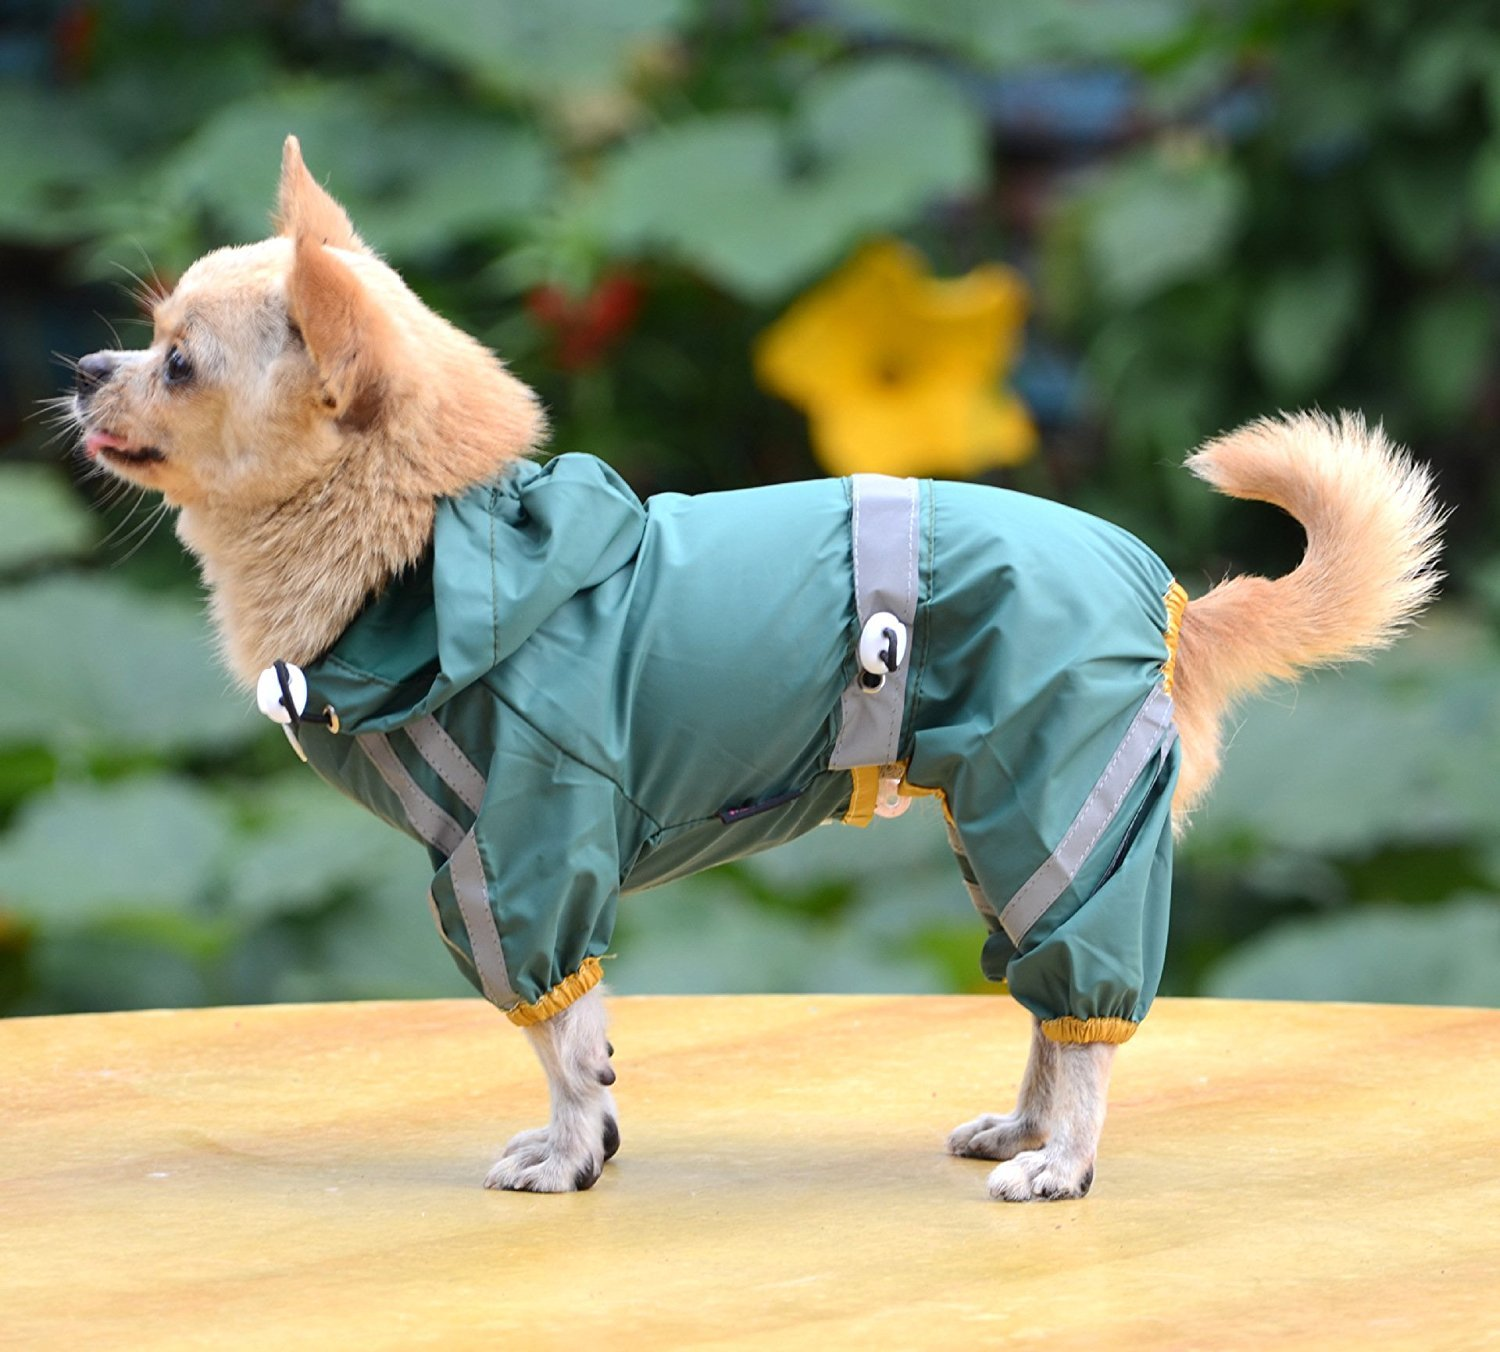 Green XS Green XS PAWZ Road Large Dog Raincoat Button Design Waterproof with Pocket and Adjustable Waist 3 colors 6 Sizes,Dog Costumes (color   Green, Size   XS)